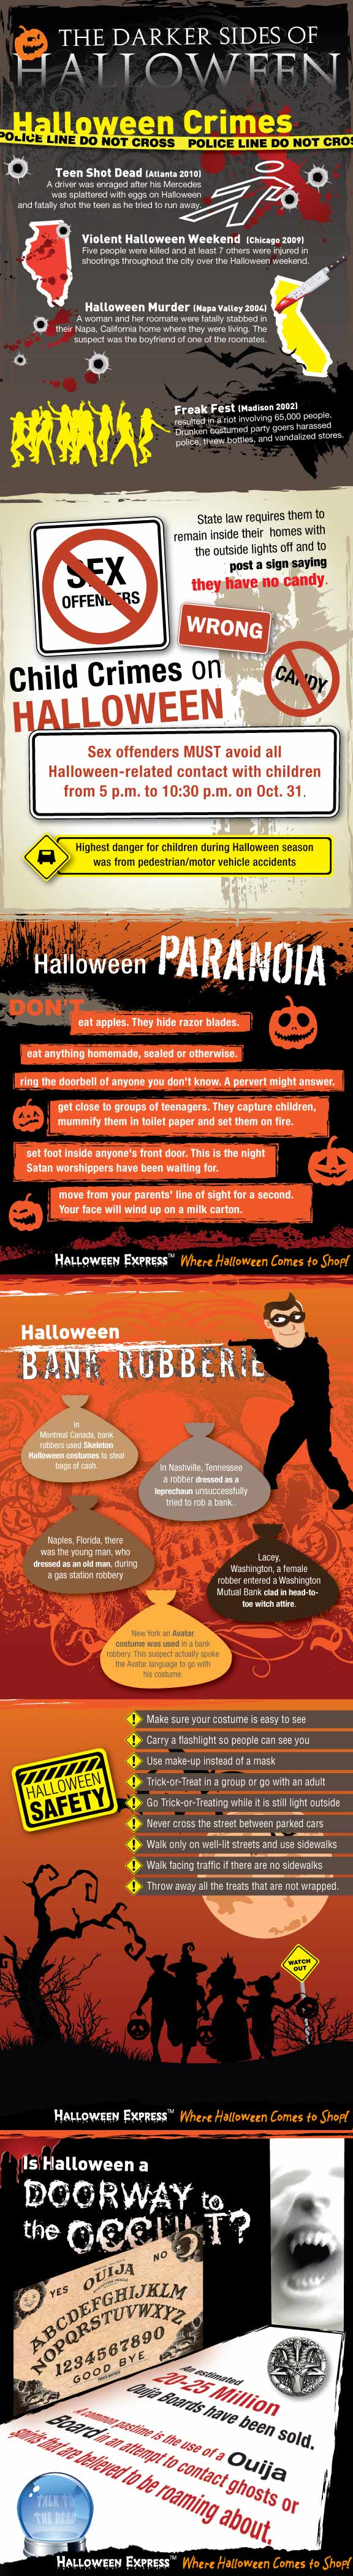 The Darker Side Of Halloween [Infographic]